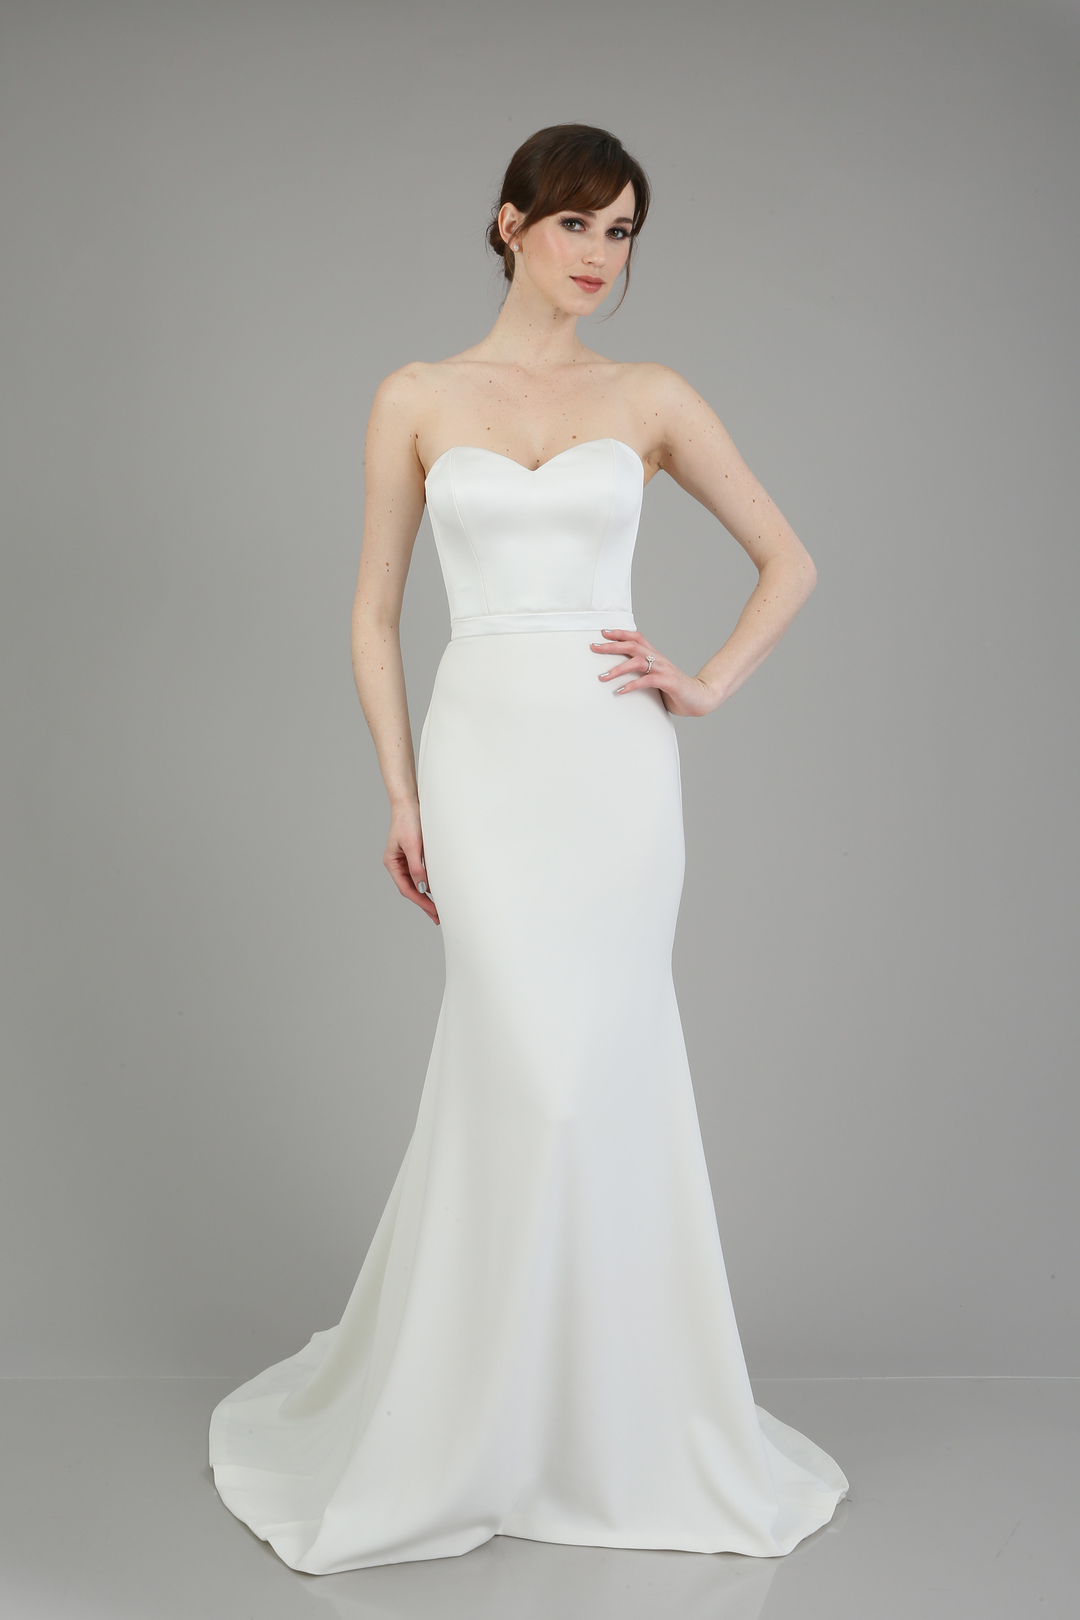 890358 bonnie  dress photo